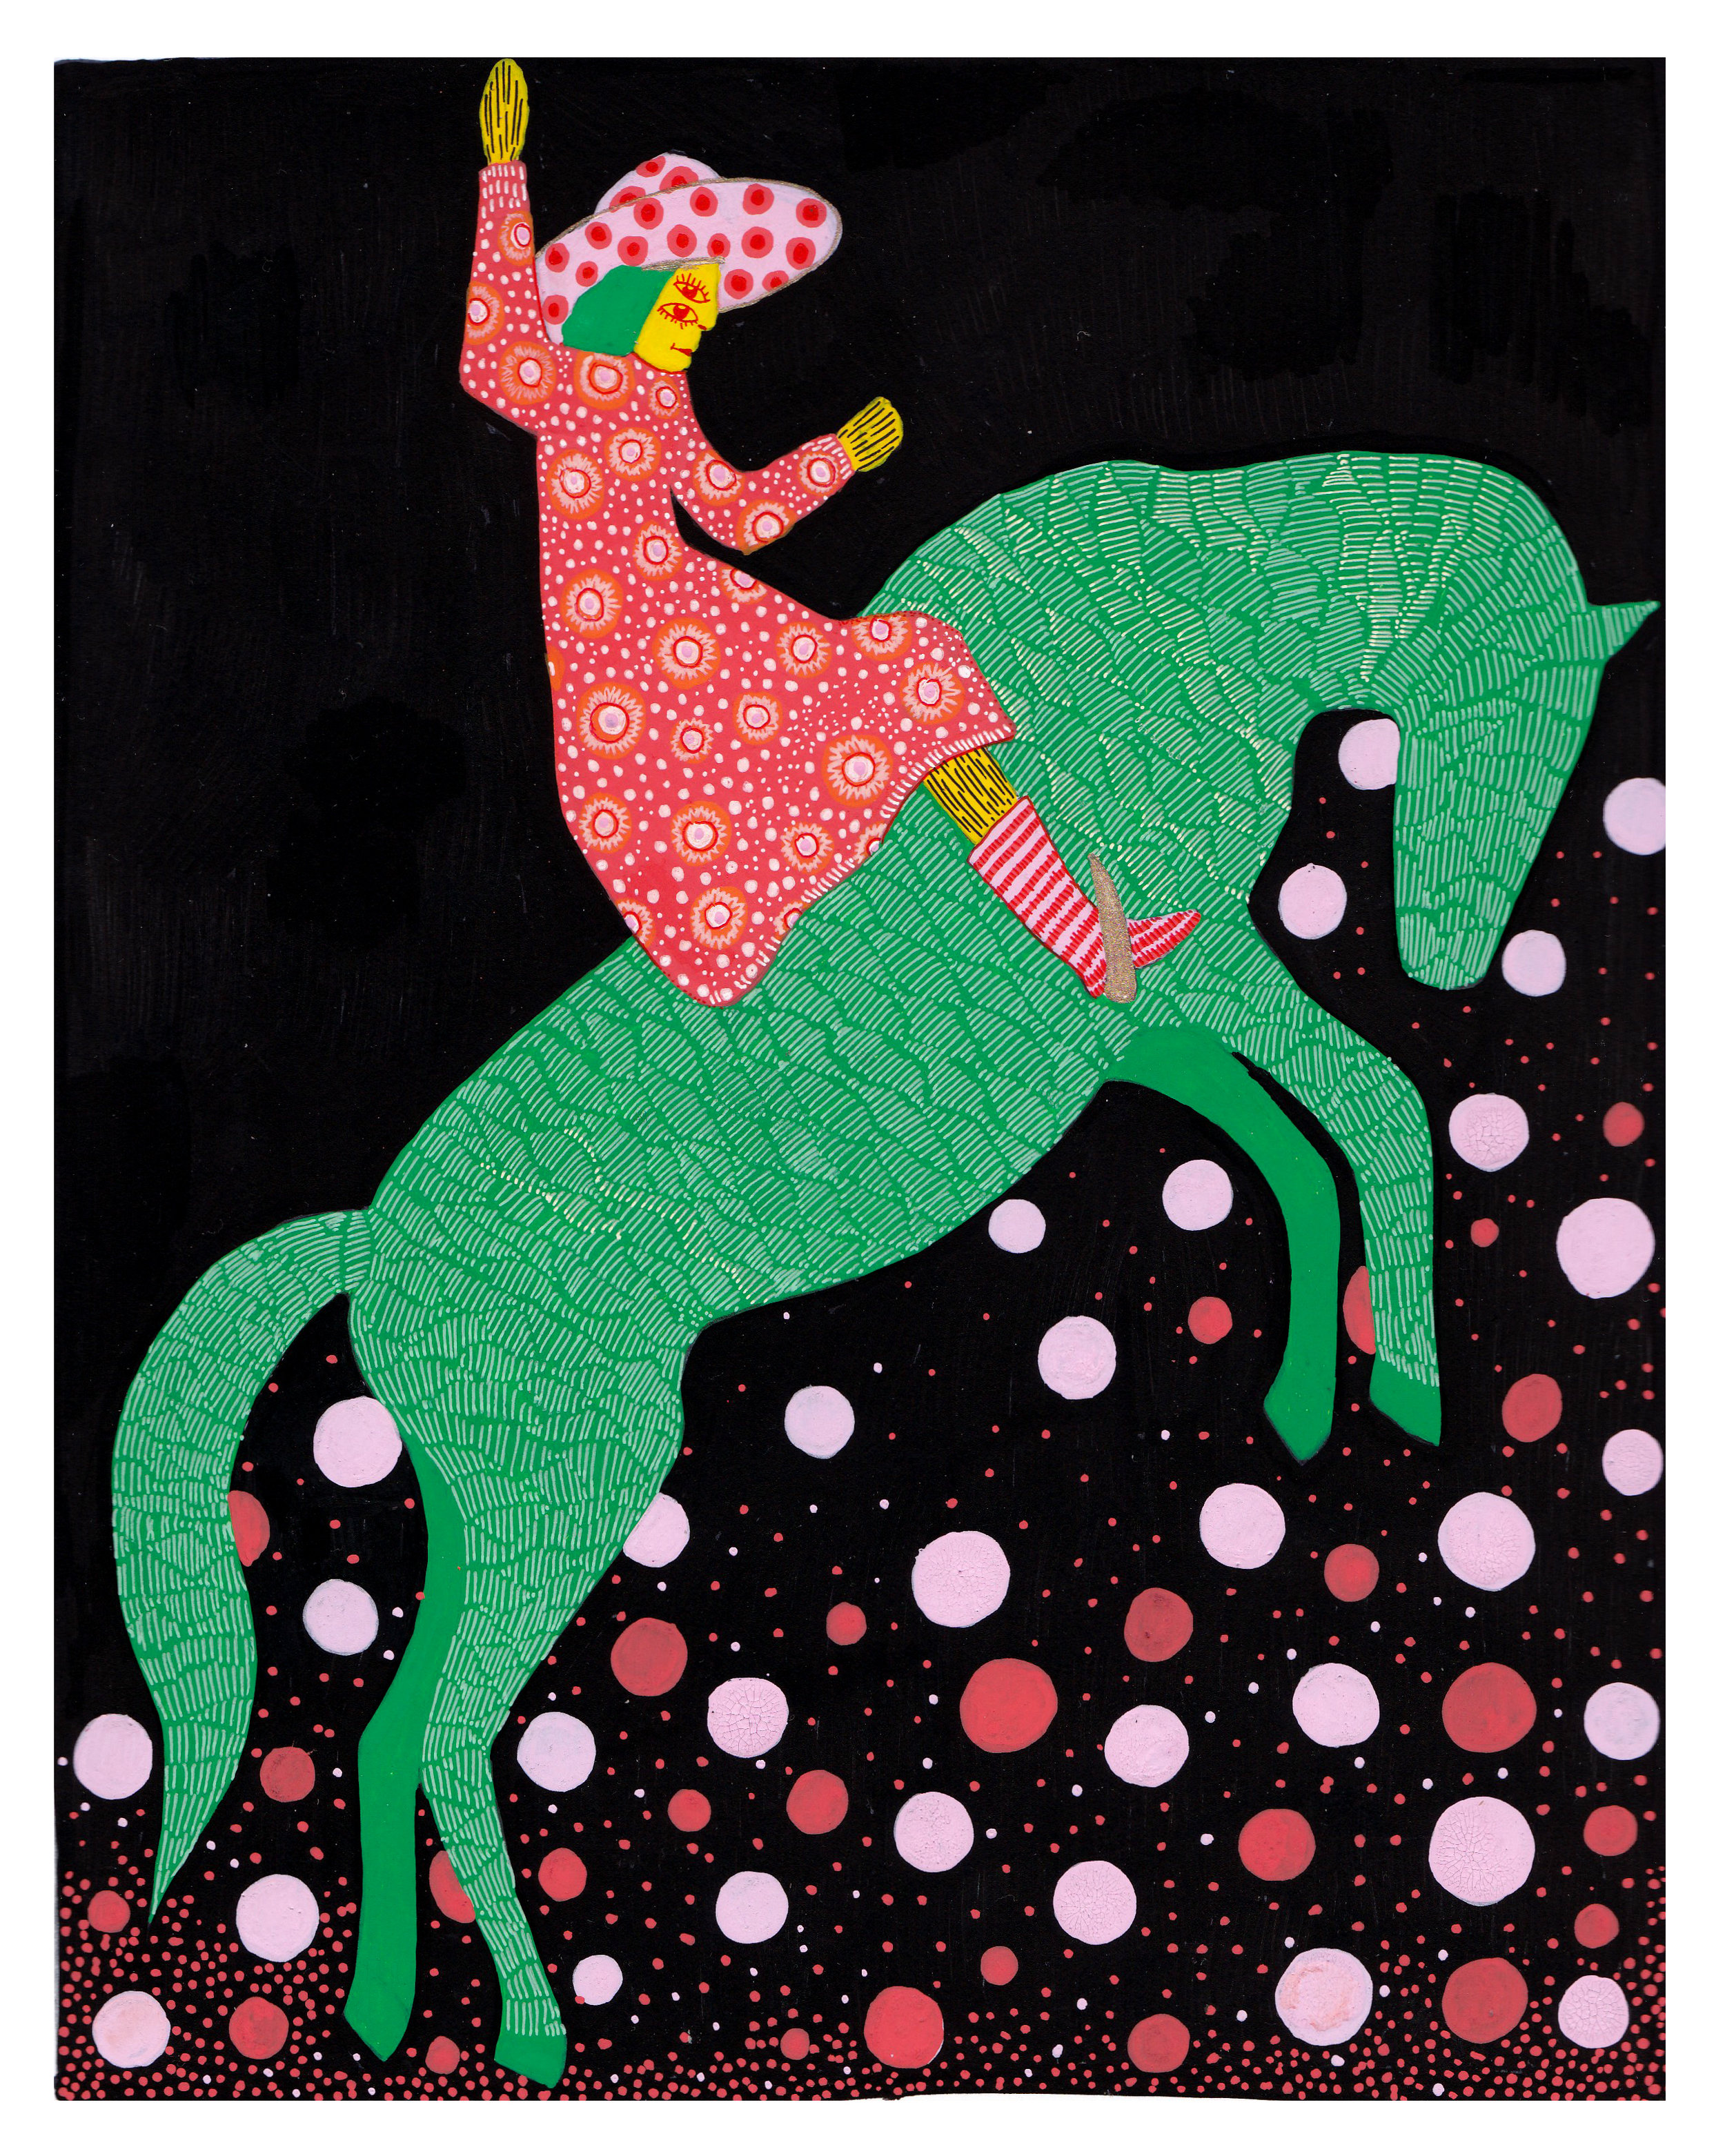 Kami Baergen  •Seattle, WA  @kbaergen   I grew up watching a lot of westerns and most of the women depicted were damsels in distress, or cute housewives, so I've become interested in finding the independent women of the west. This piece is inspired by Dorothy Morrell, a championship rodeo rider.